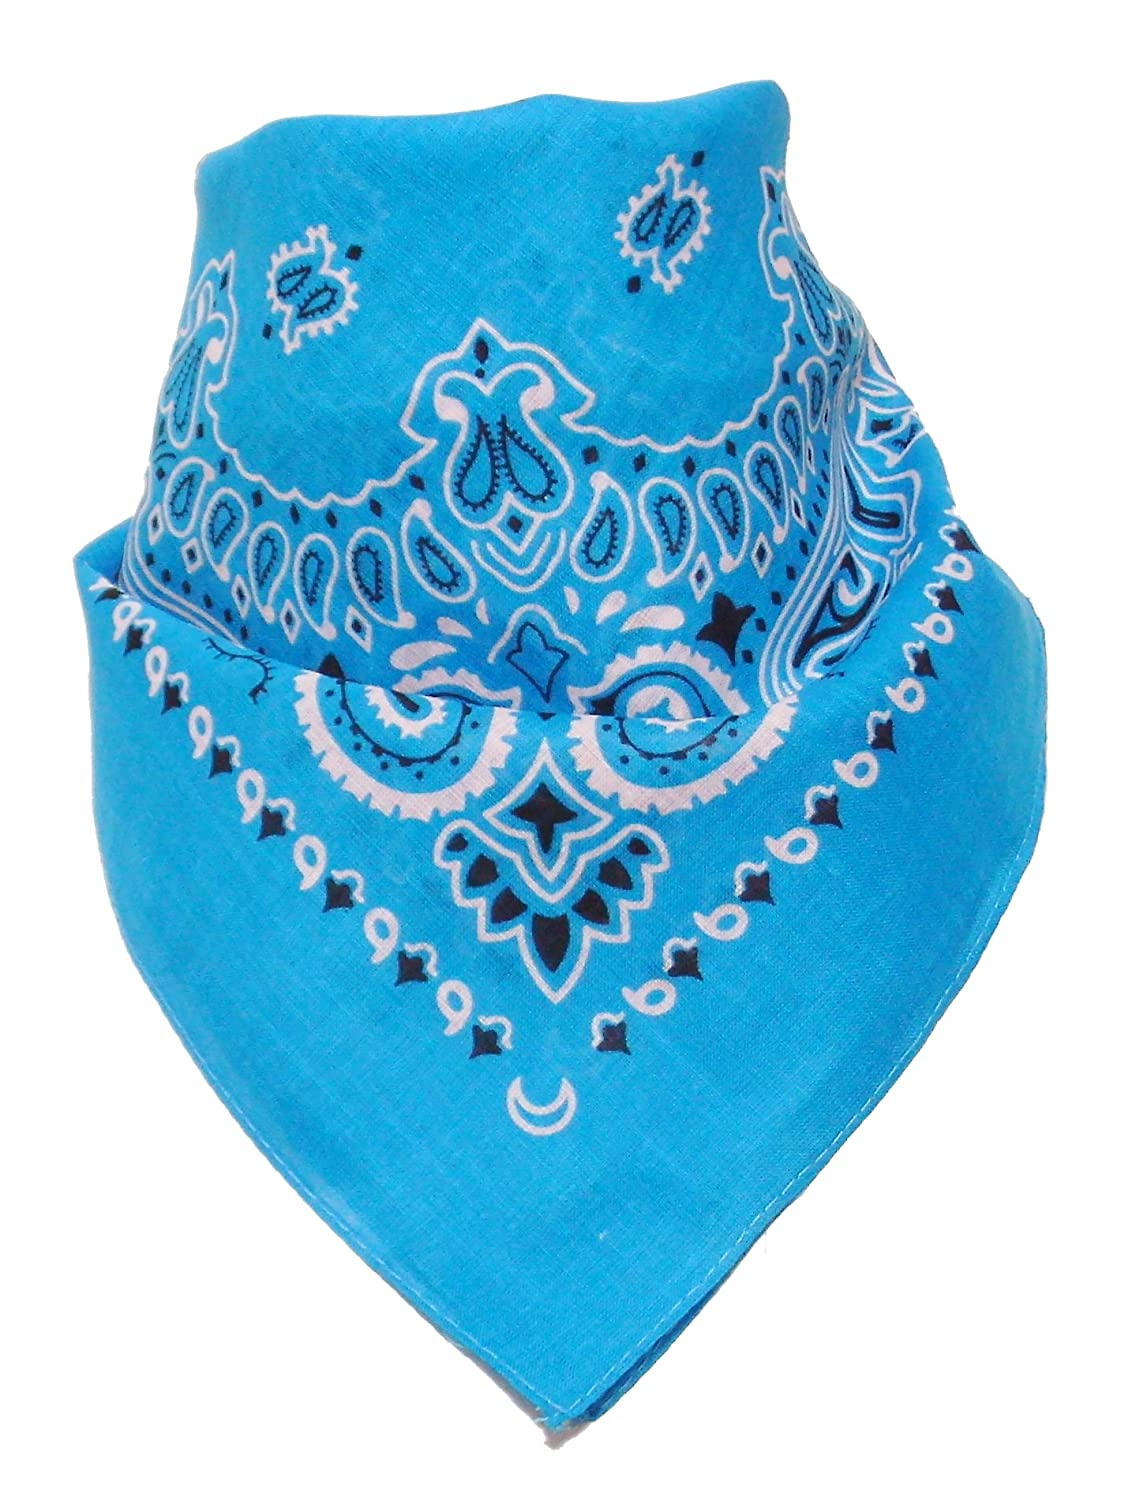 Bandana with original Paisley pattern in turquoise